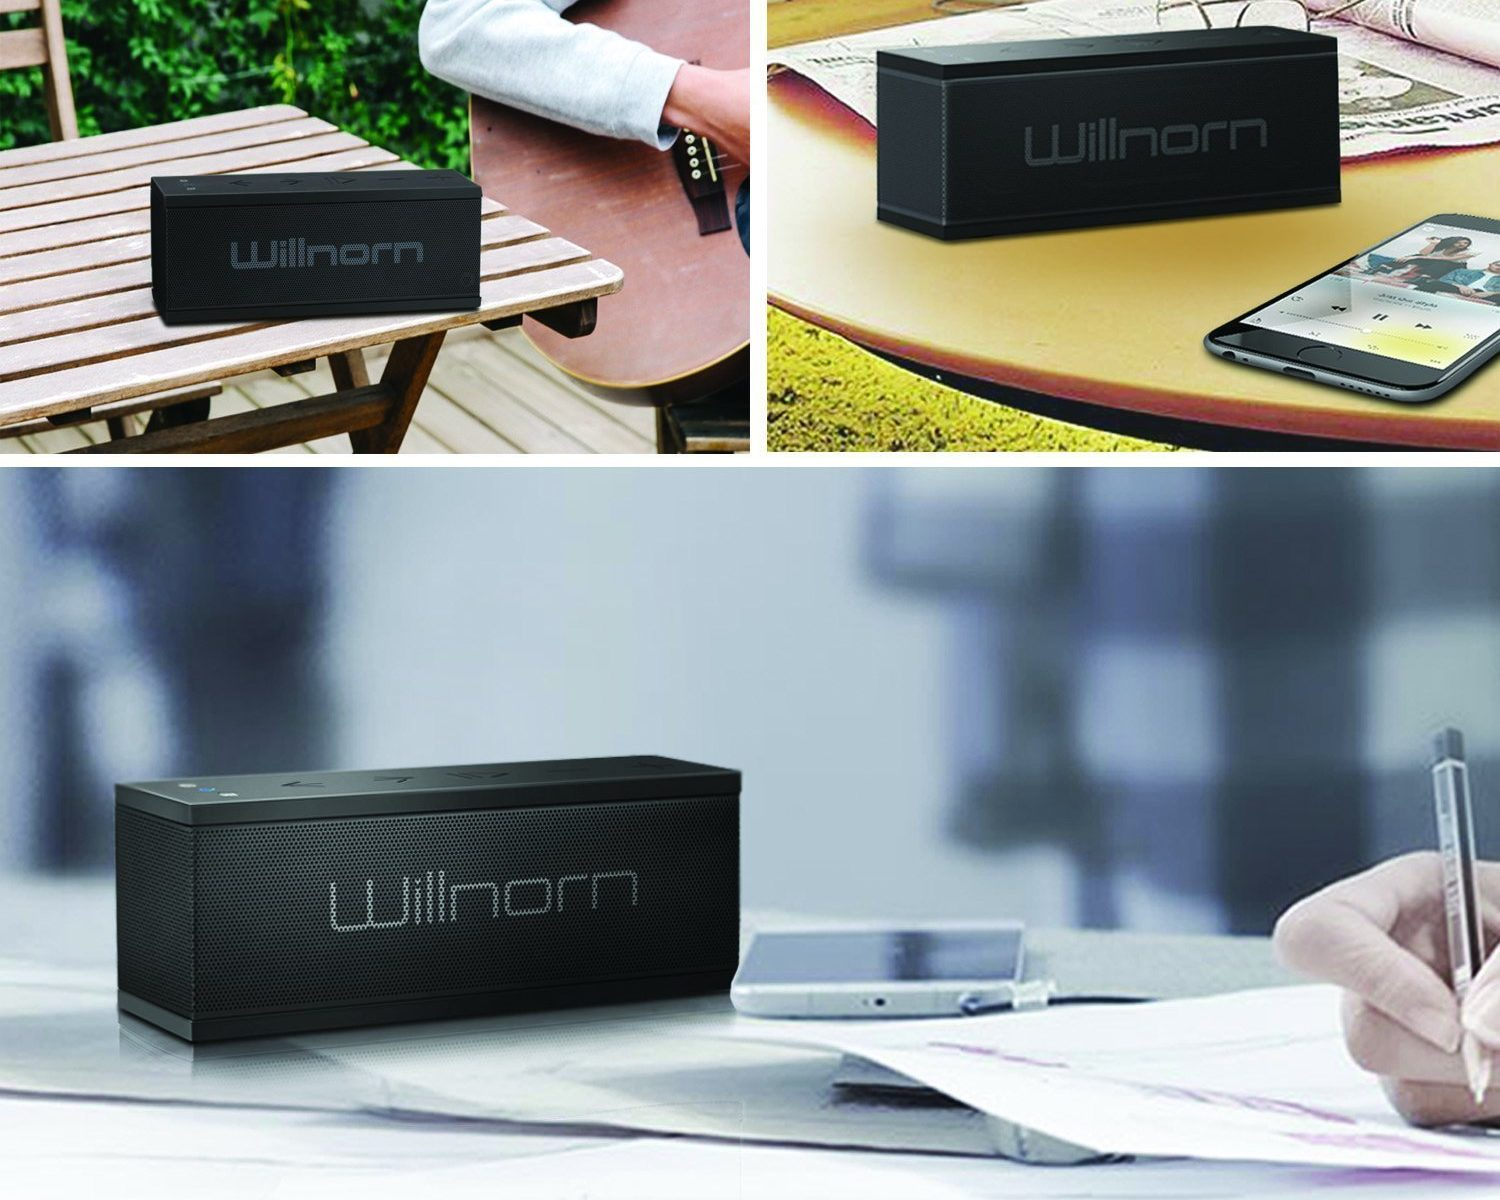 Willnorn Soundplus Bluetooth-Lautsprecher